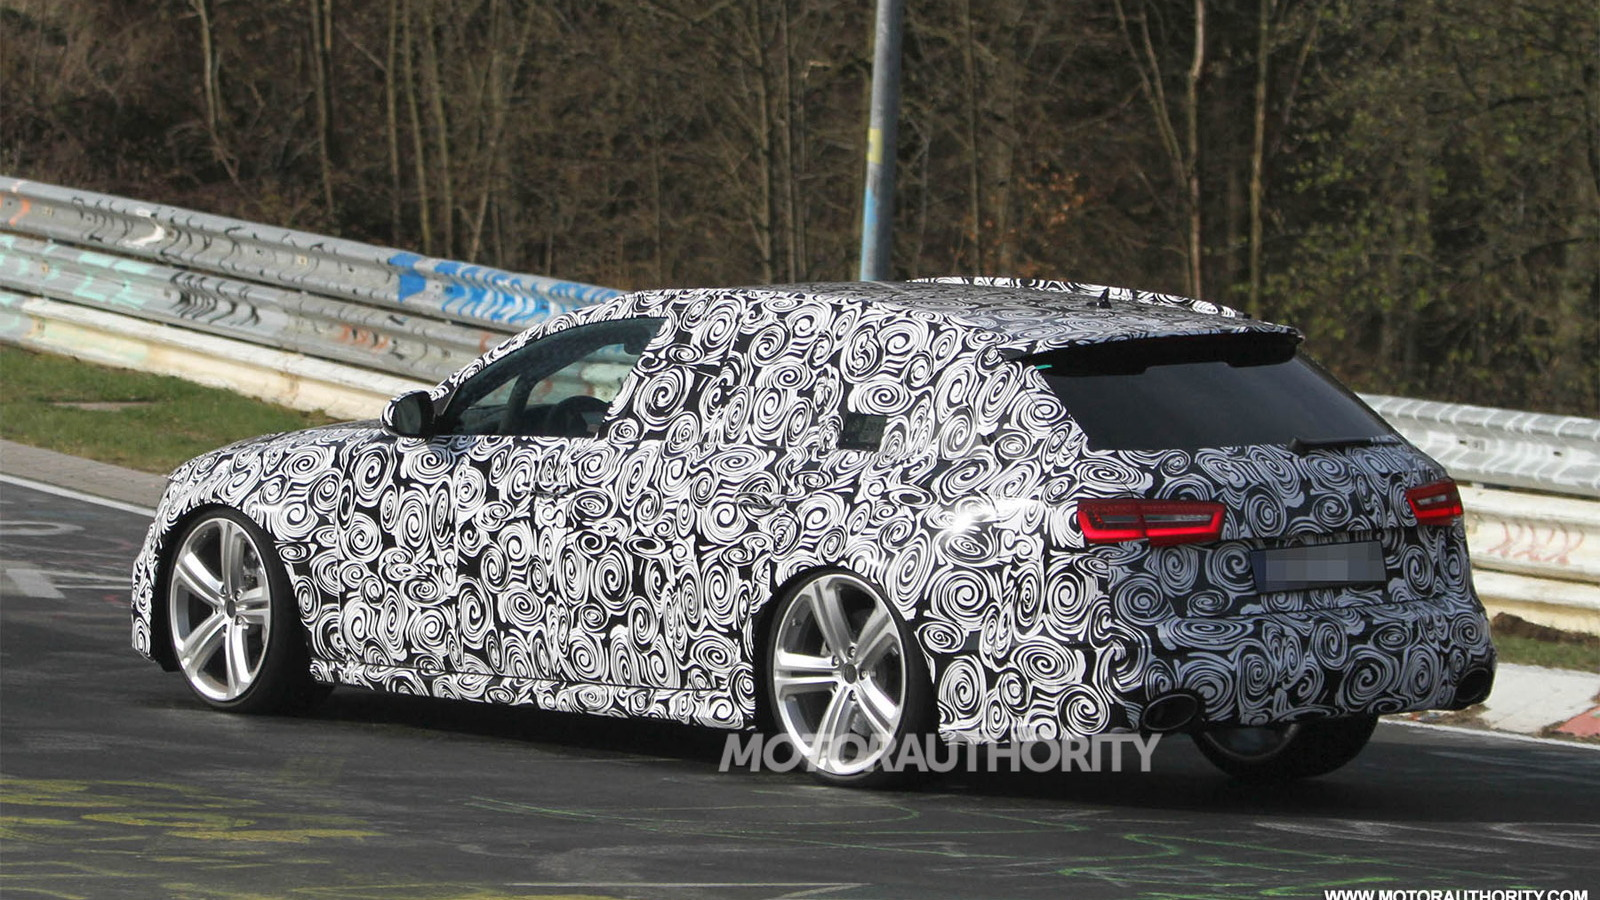 2014 Audi RS 6 Avant spy shots